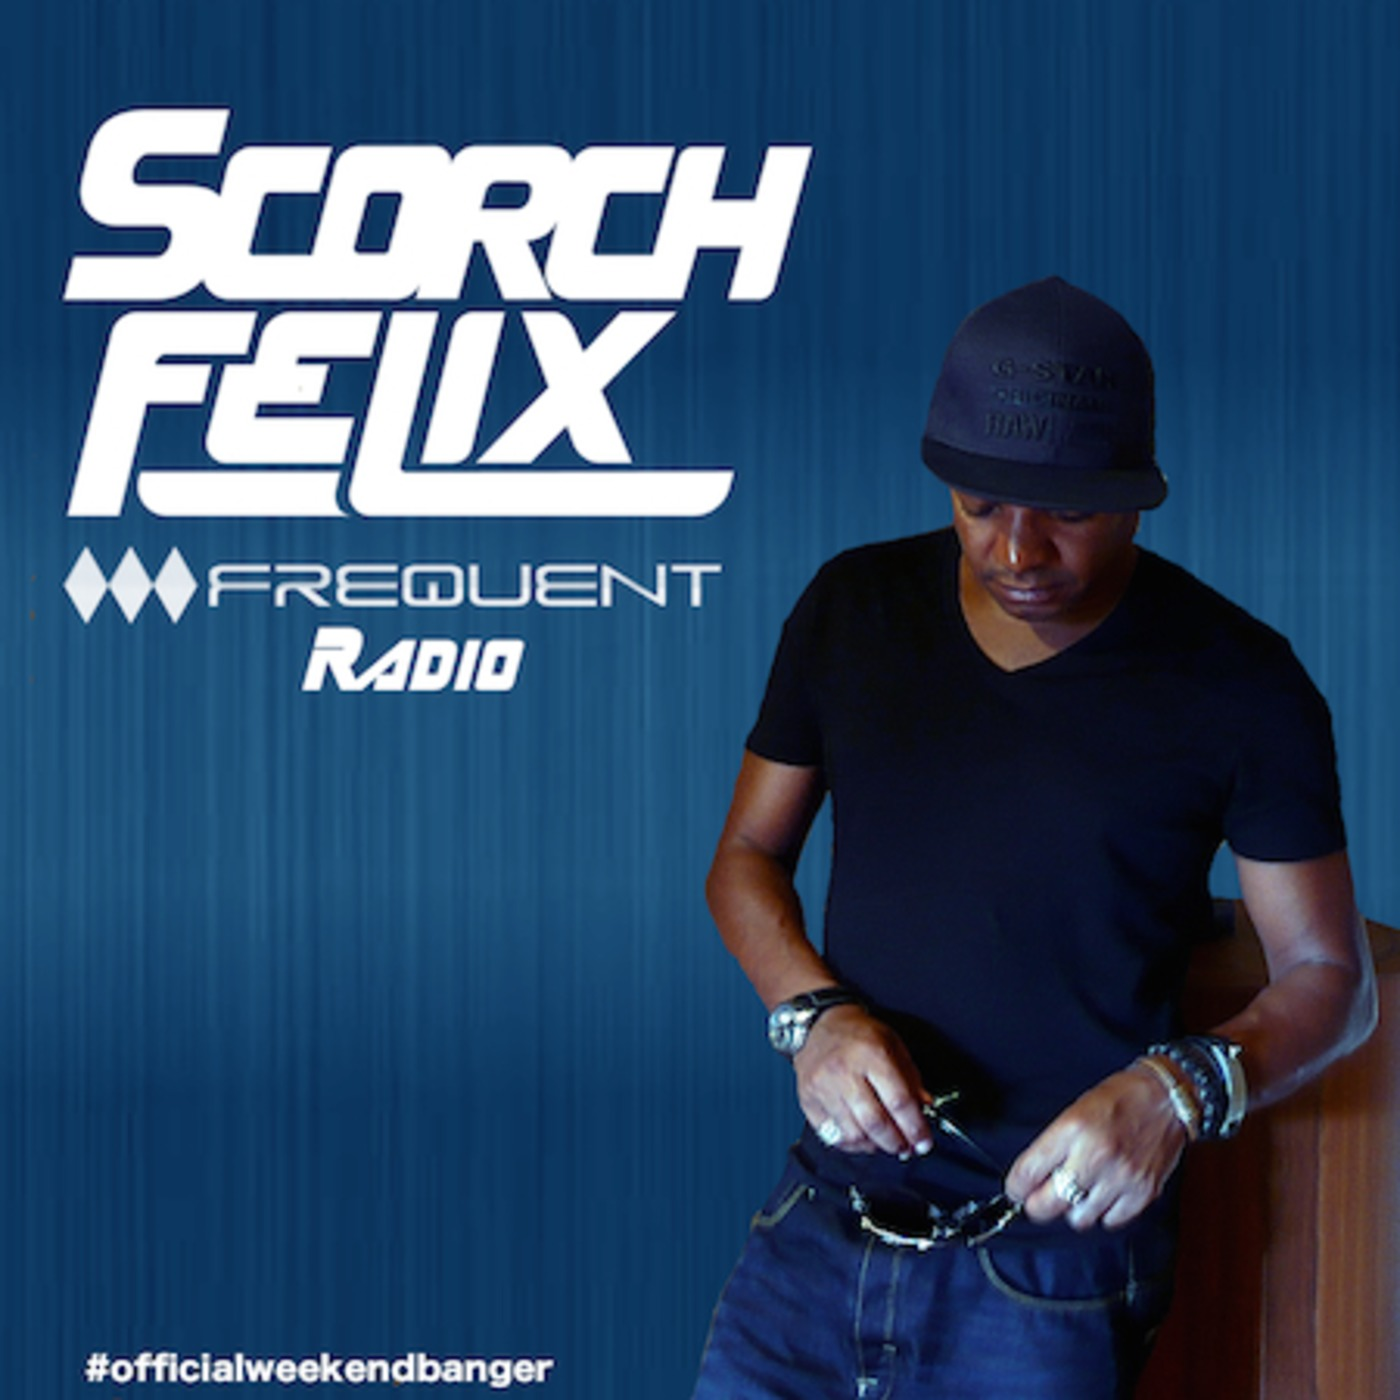 Scorch Felix pres Frequent Radio